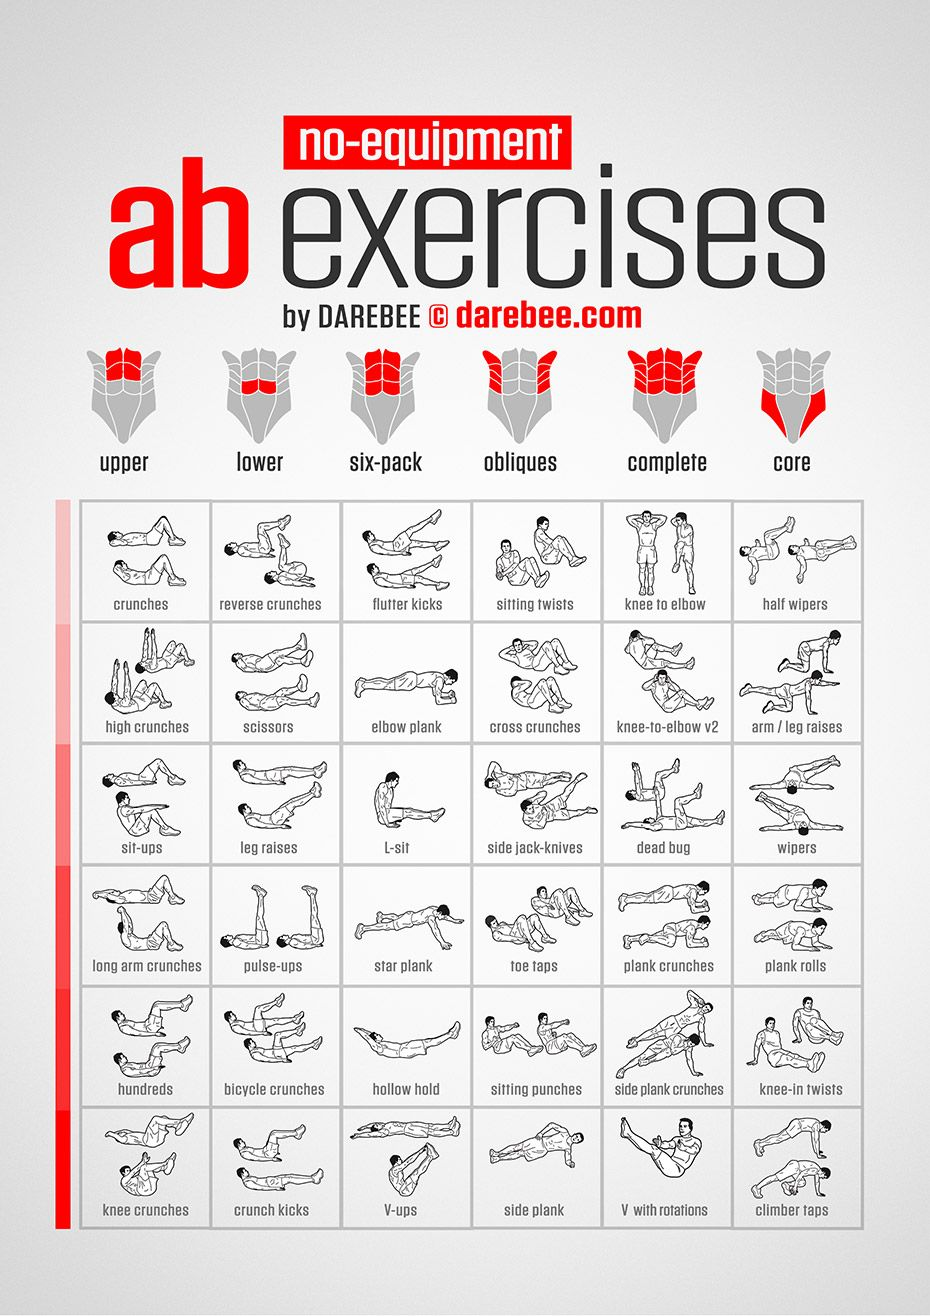 Exercise Fitness Tips: Types of Exercises, Workouts, Fitness Advice, Tips and Training recommendations